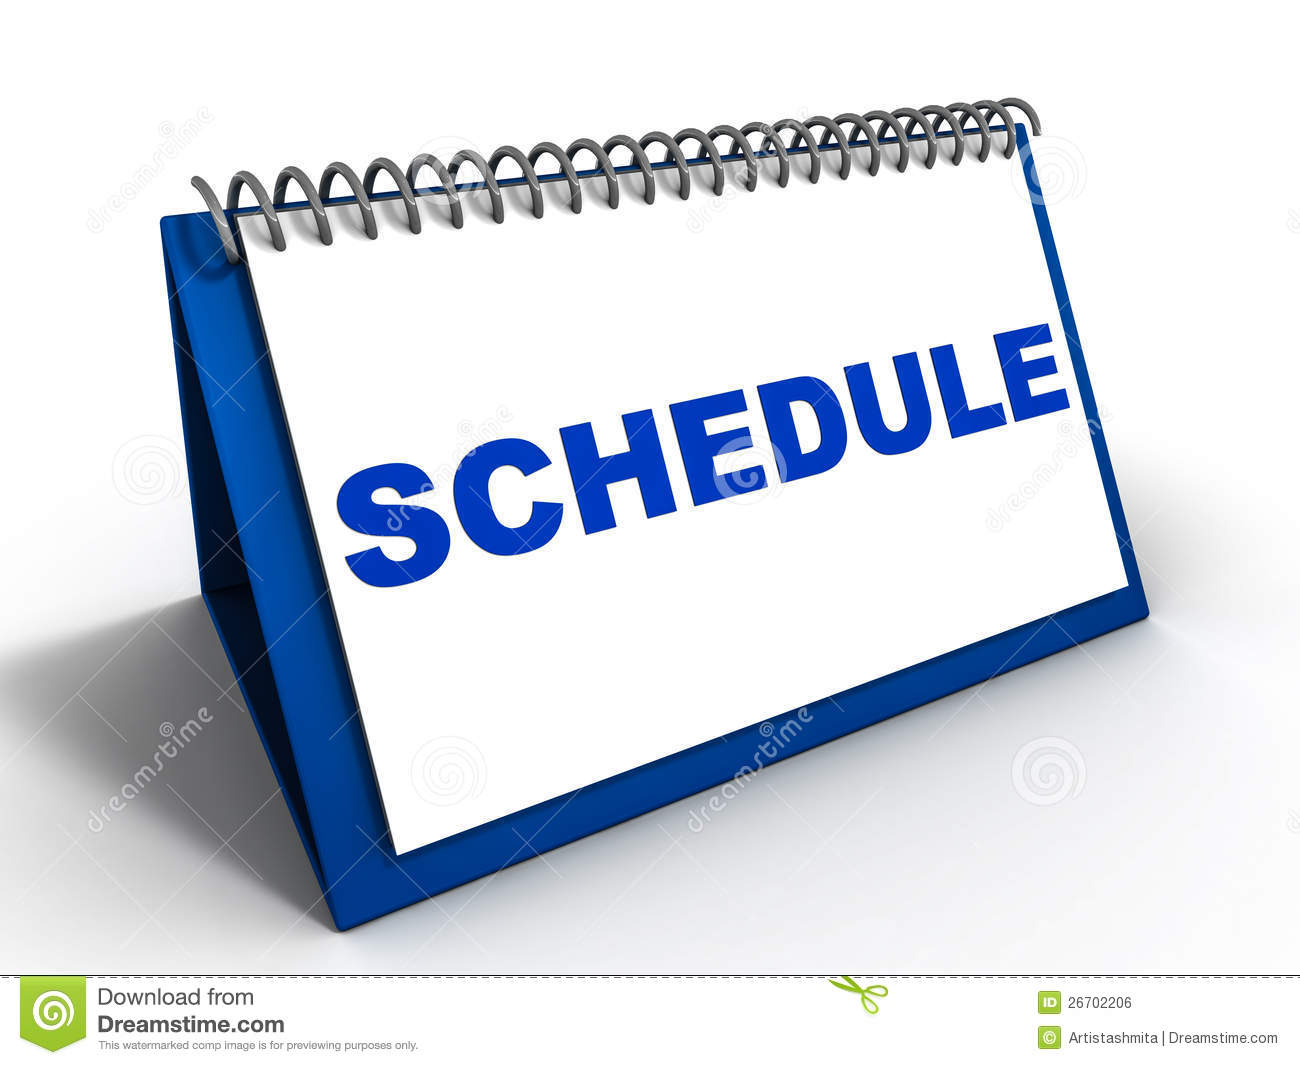 ... or weekly schedule for important meetings, appointments and tasks